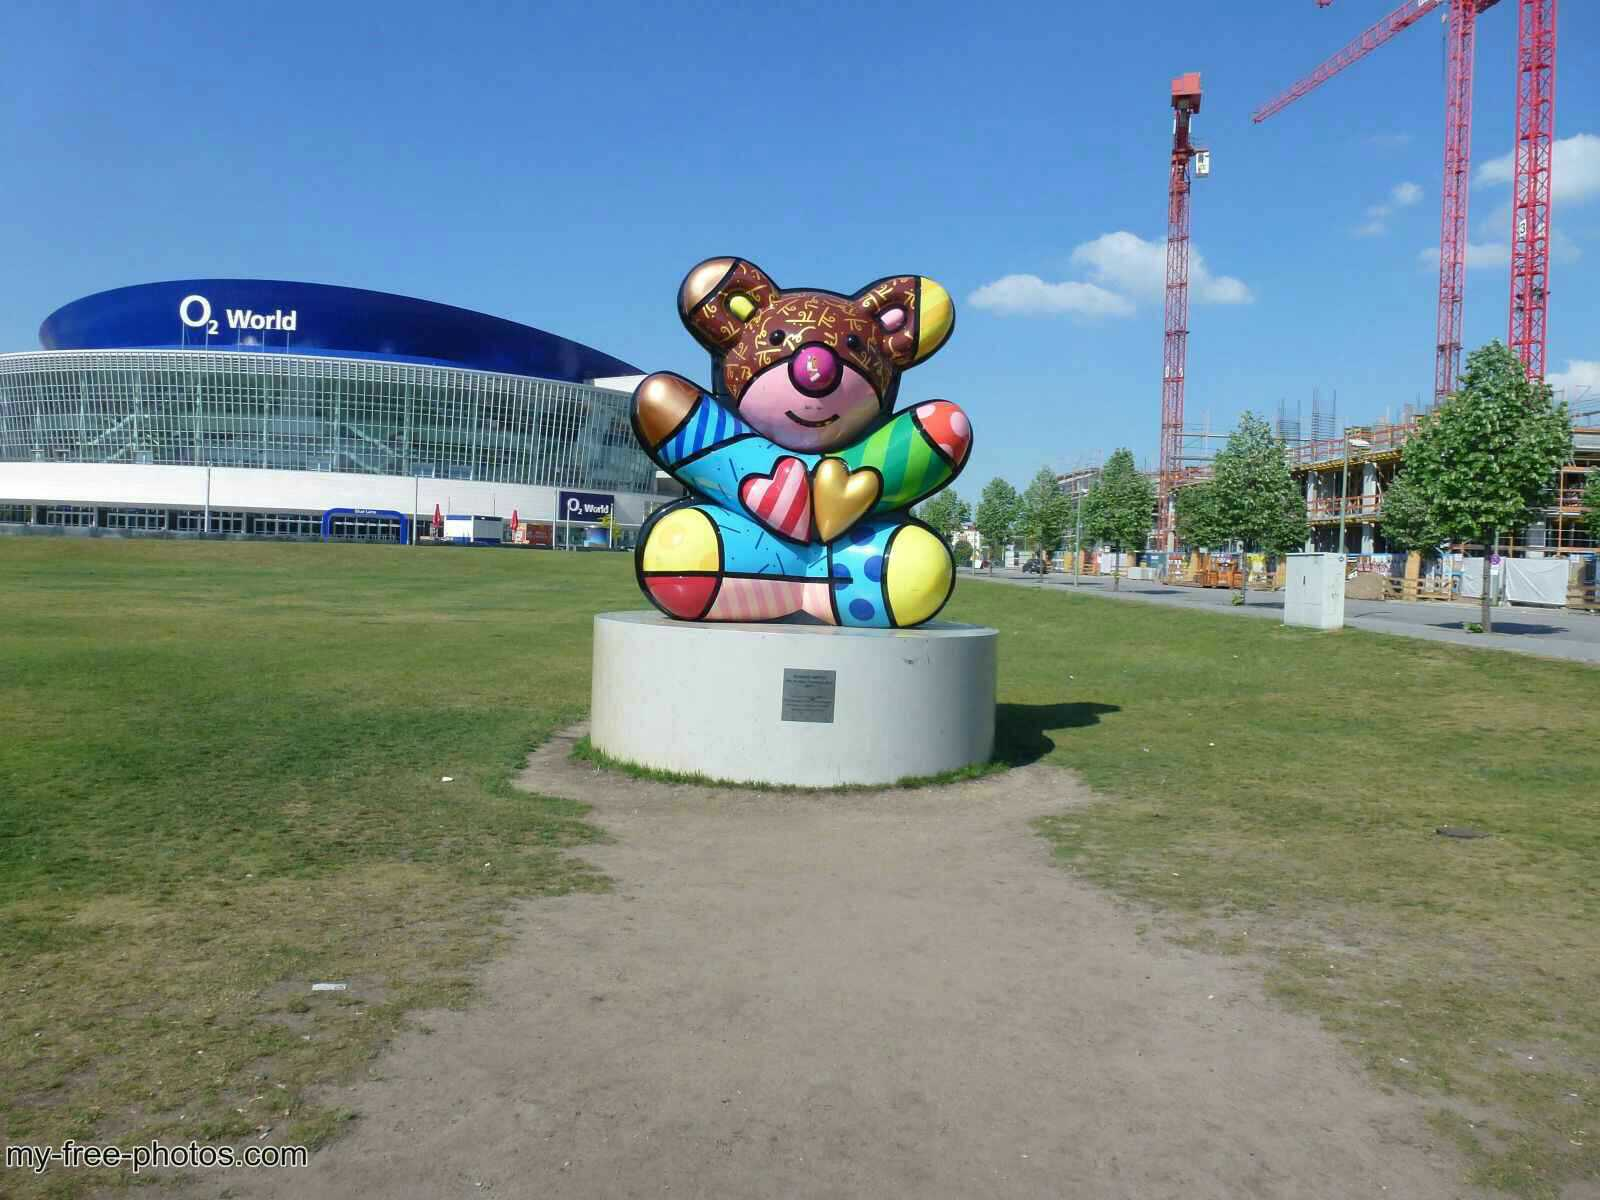 O2 world,Berlin